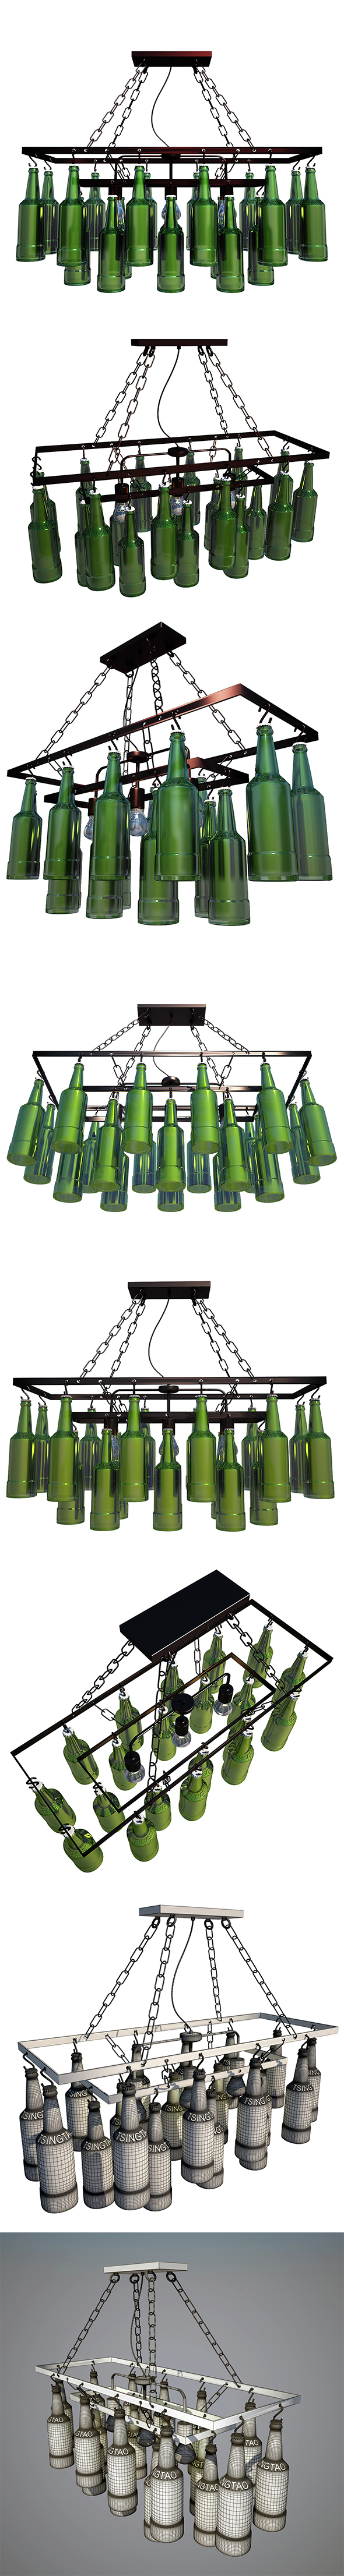 Pendant Lamp Beer Bottles - 3DOcean Item for Sale